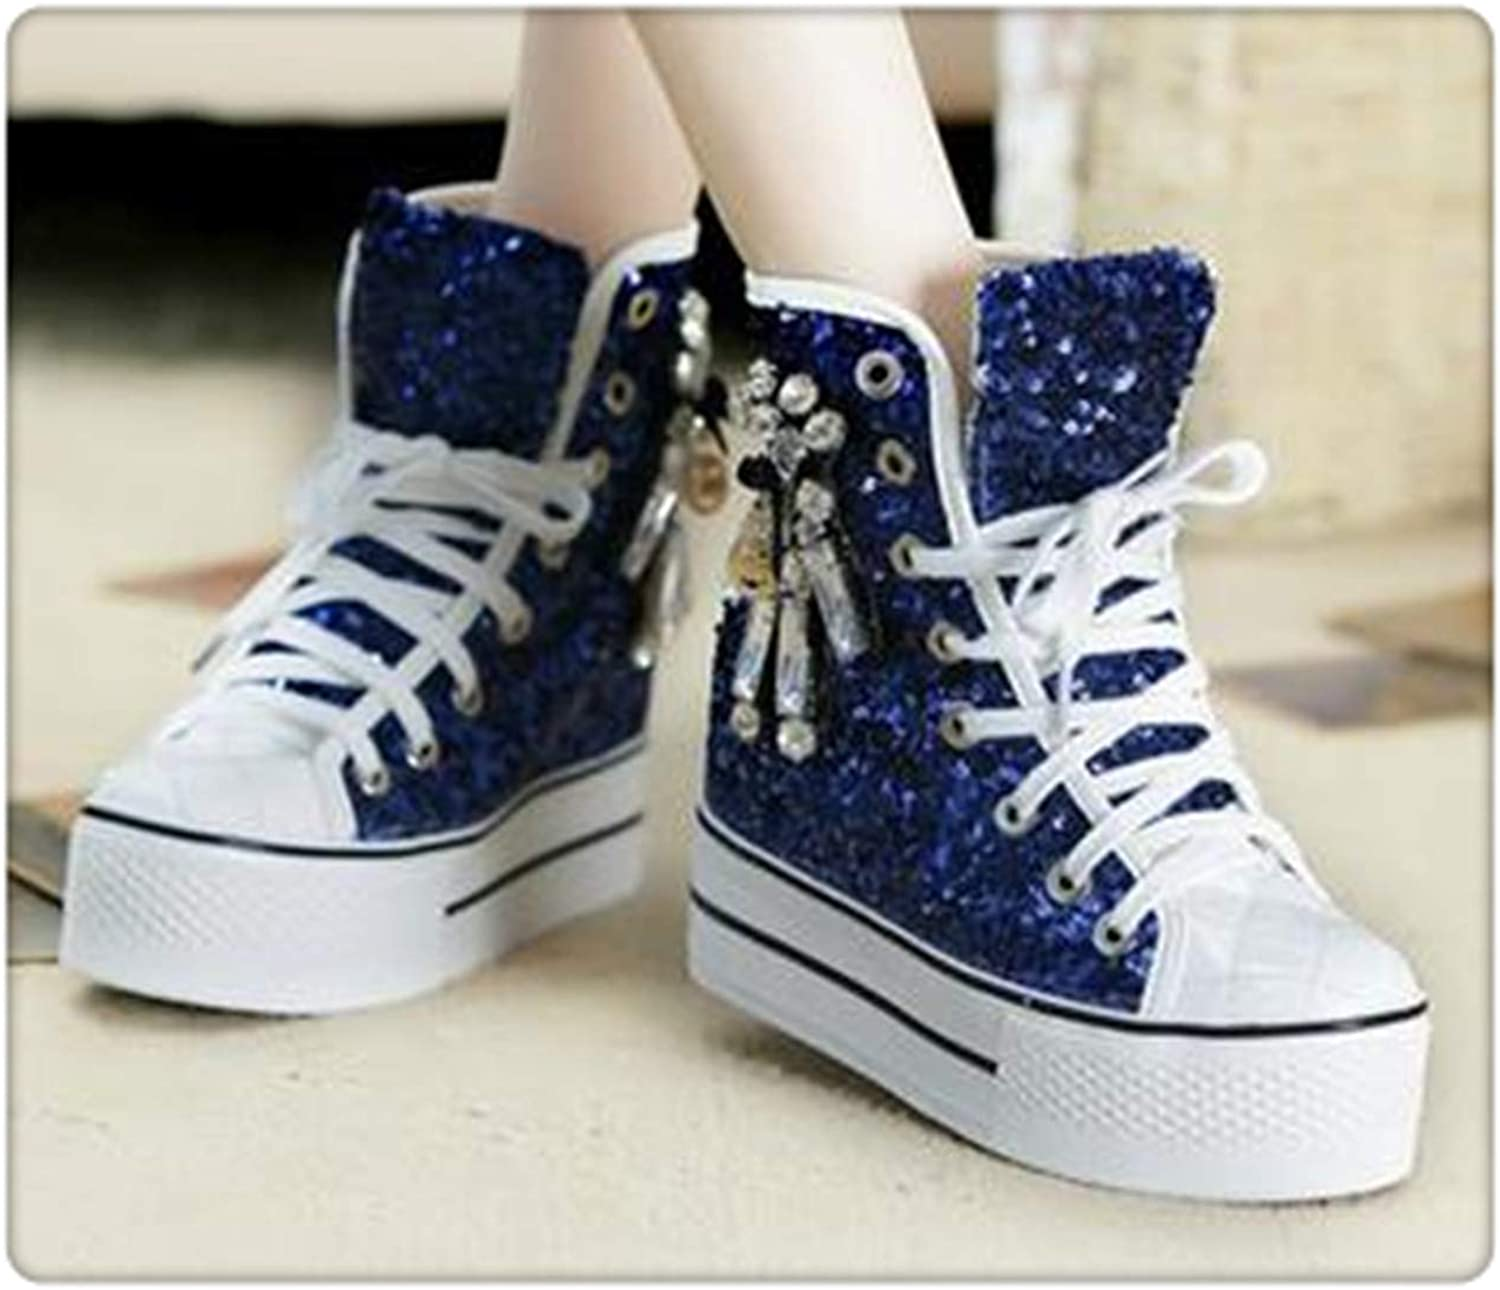 LUSDO& Sequins Canvas shoes Womens 2019 Spring and Autumn Diamond Lacing-up Casual shoes High Top Sneakers Women bluee 6